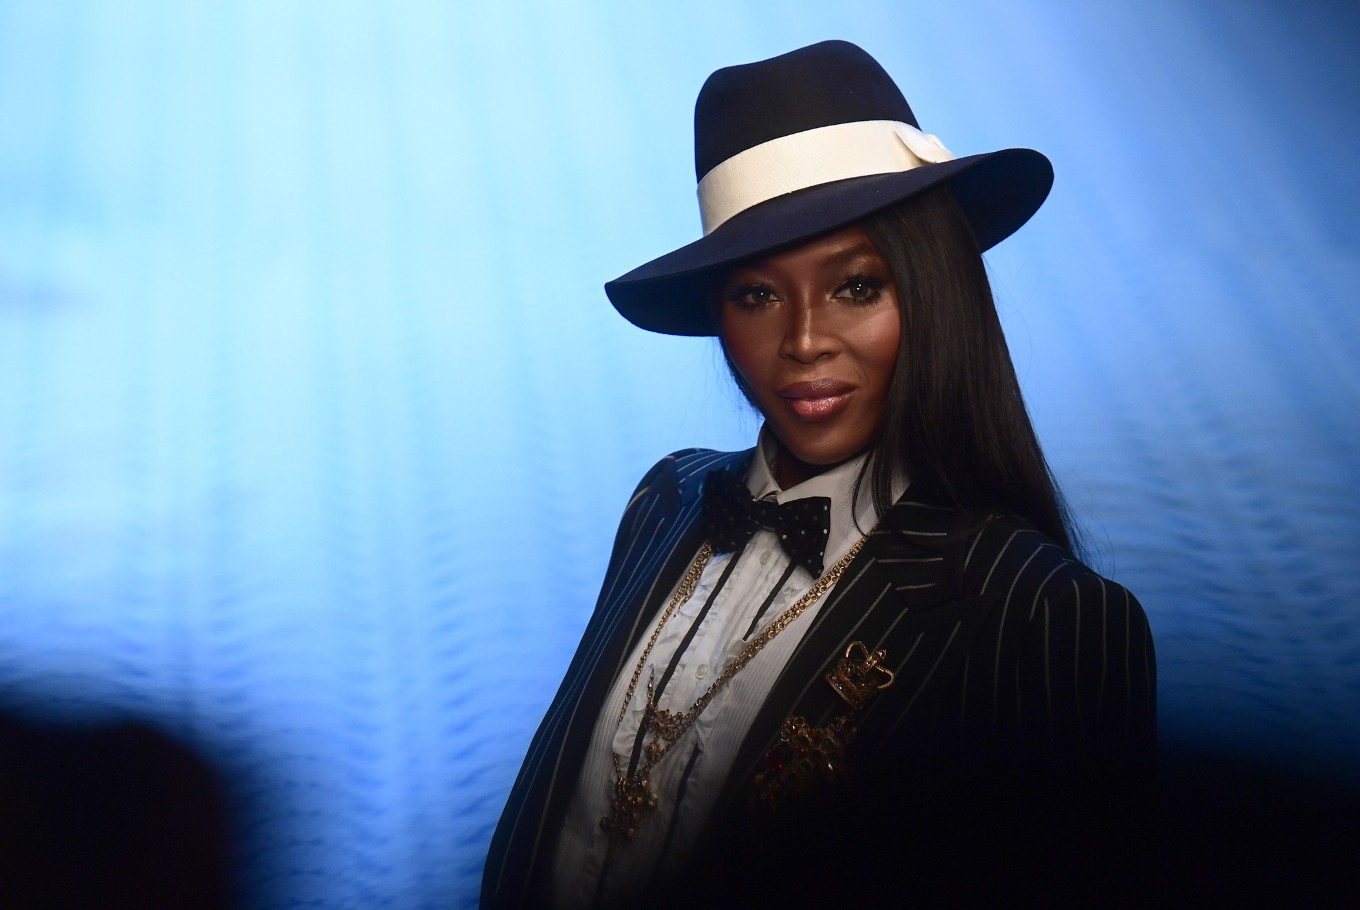 Fashion must 'enforce inclusion' says supermodel Naomi Campbell